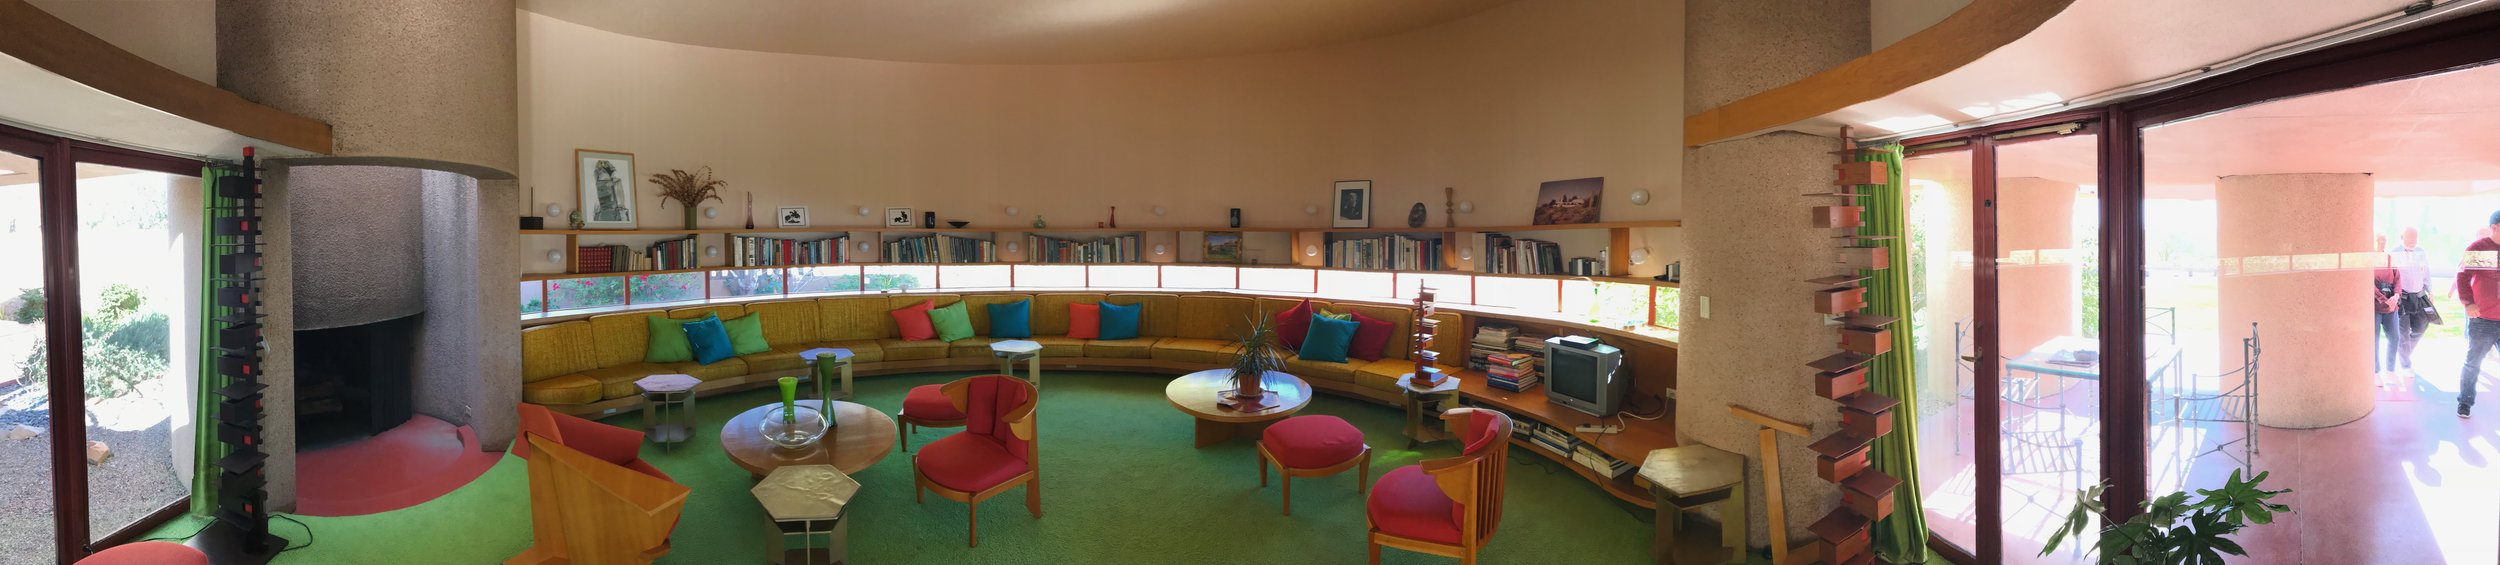 A surprise visit to a Frank Lloyd Wright house while at Taliesin!